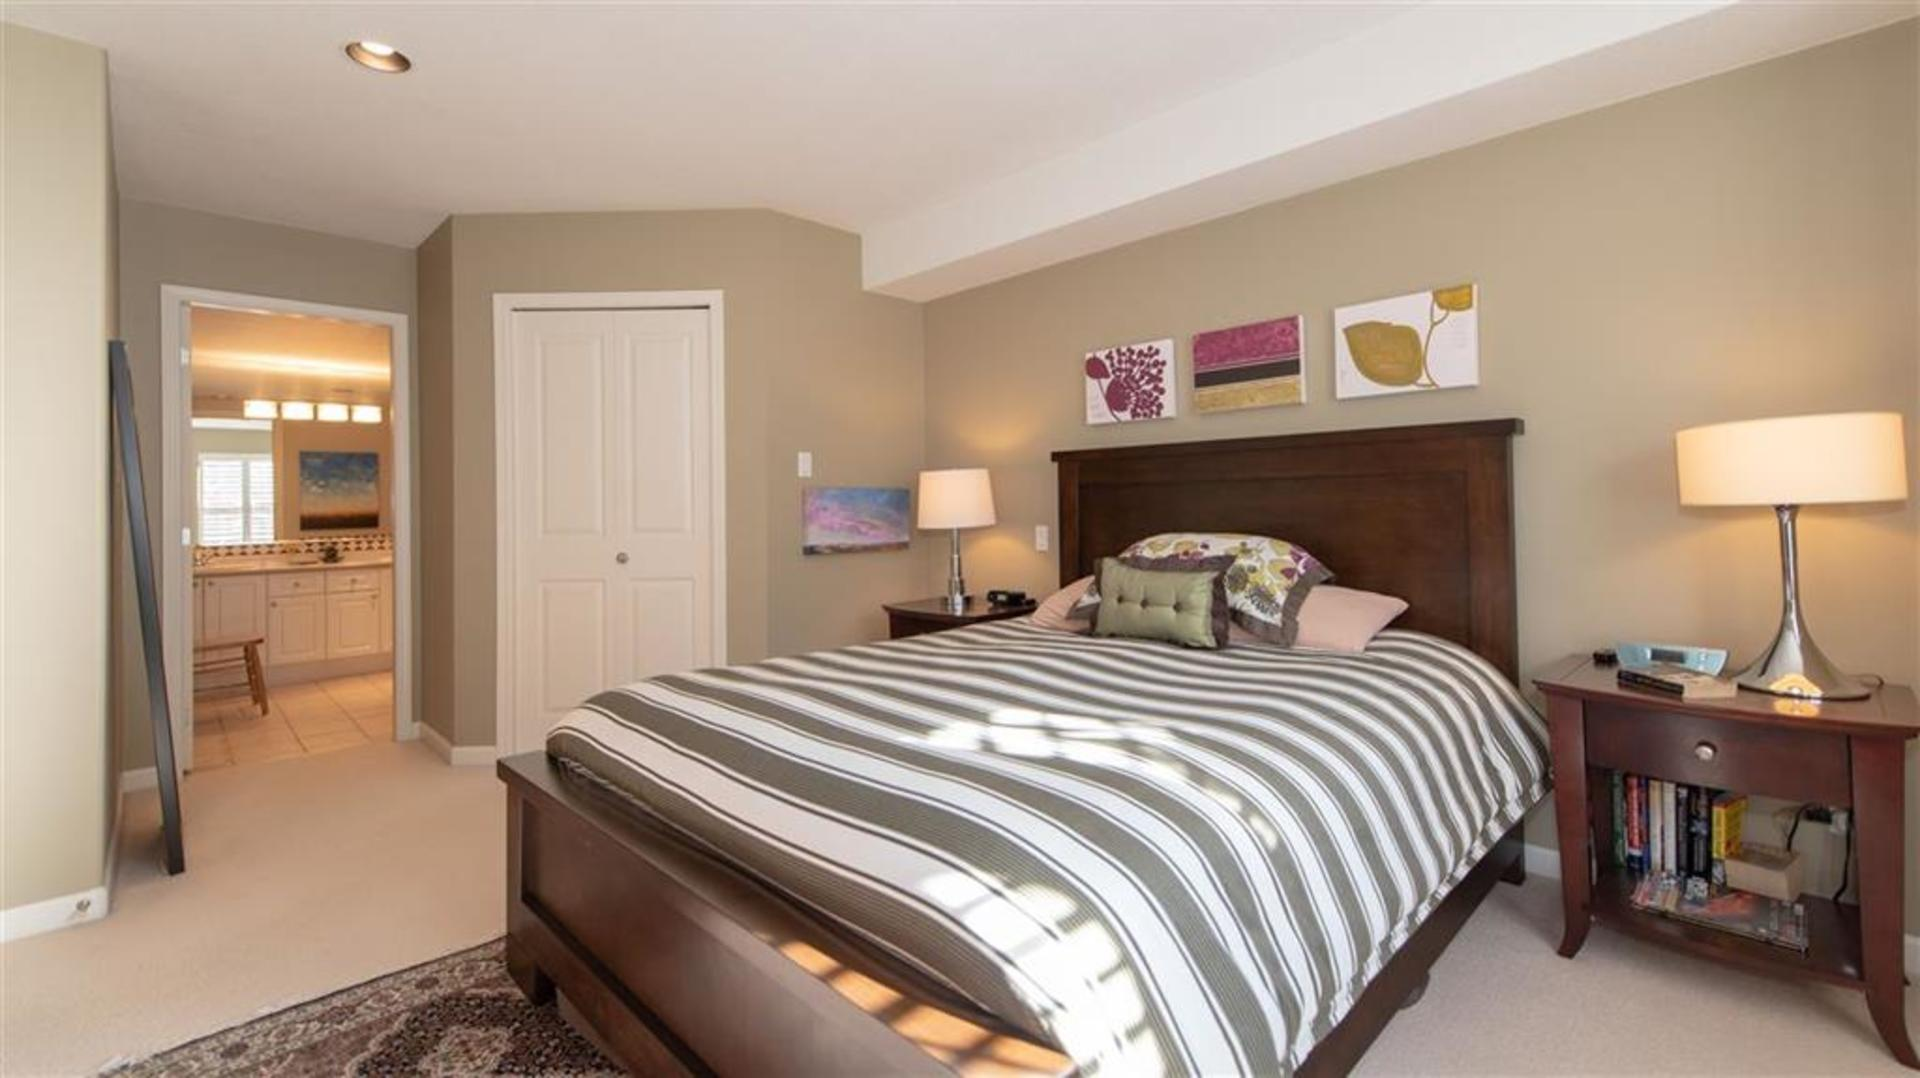 262337785-10 at 57 - 1550 Larkhall Crescent, Northlands, North Vancouver